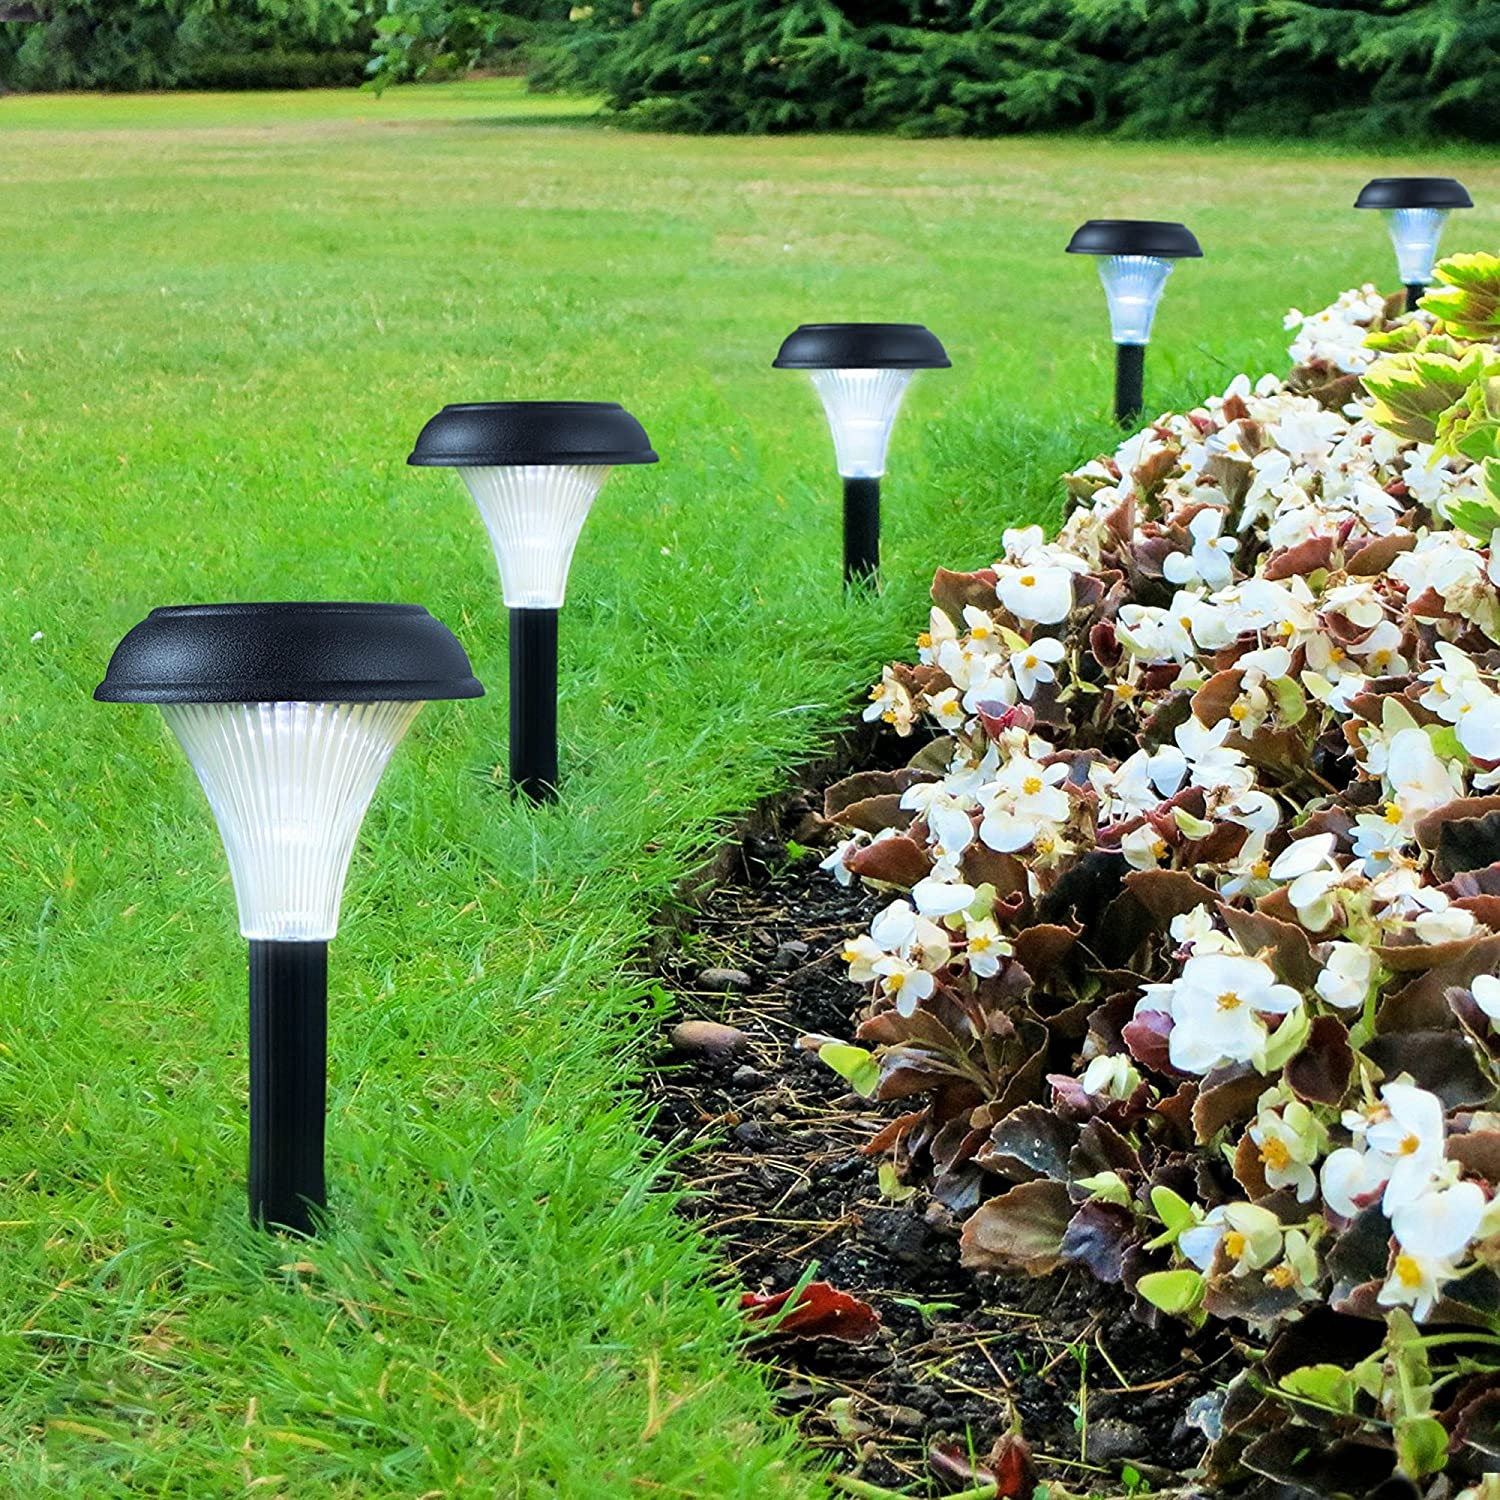 Top 15 Best Solar Path Lights In 2018 Reviews And Picks Sunny Light Gardensolar Yard Powered Lighting Garden Bliss 10 Pack Of Outdoor